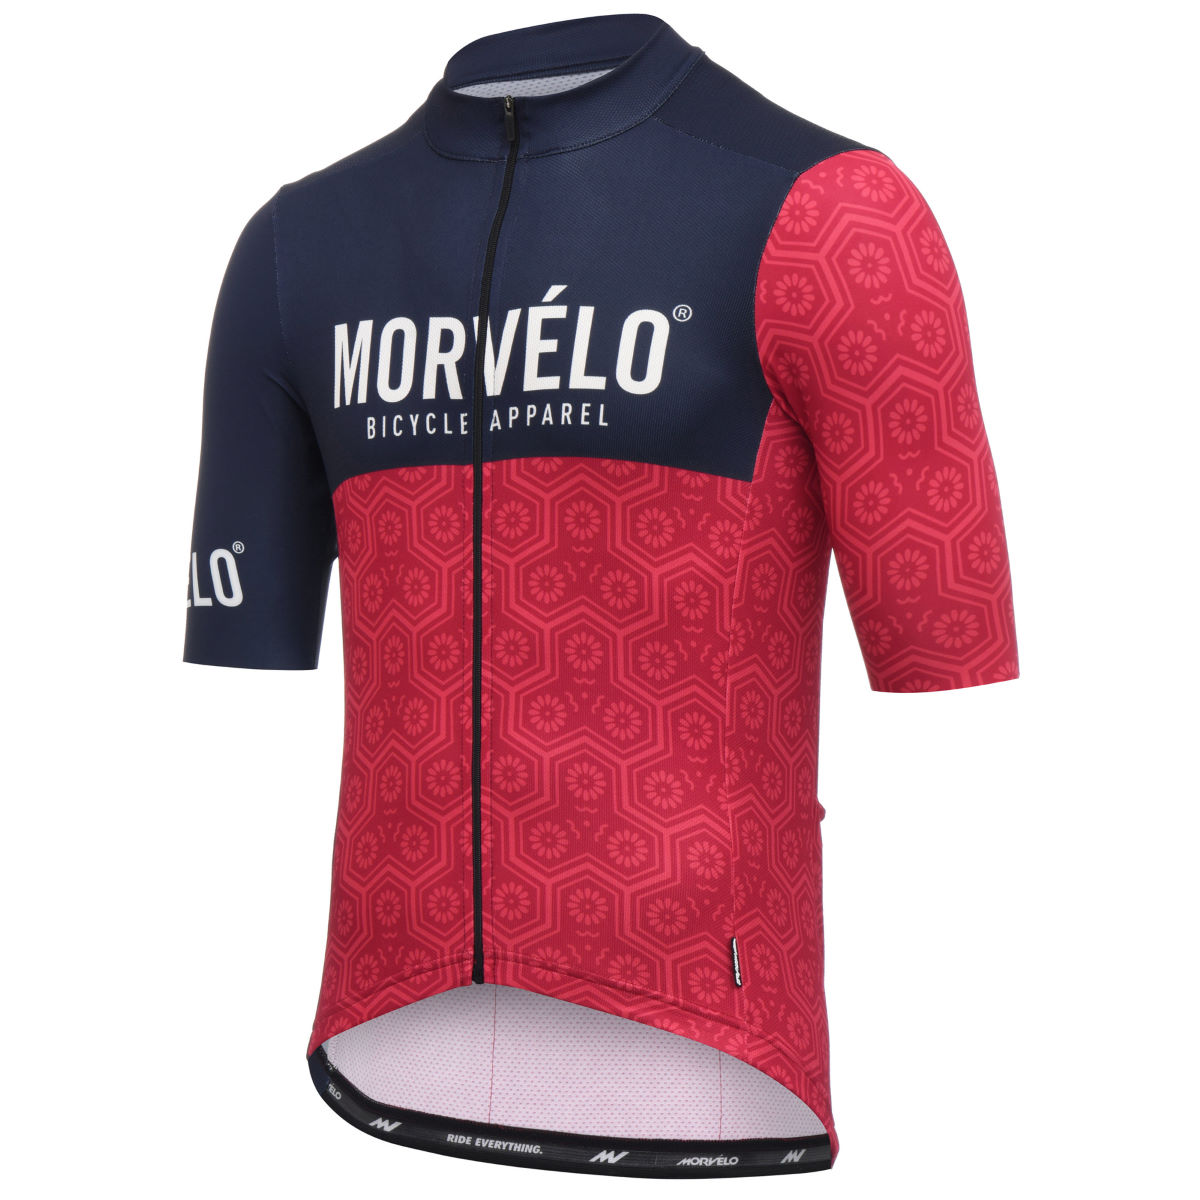 Maillot Morvélo 10 Year Celebration Double Good - Maillots